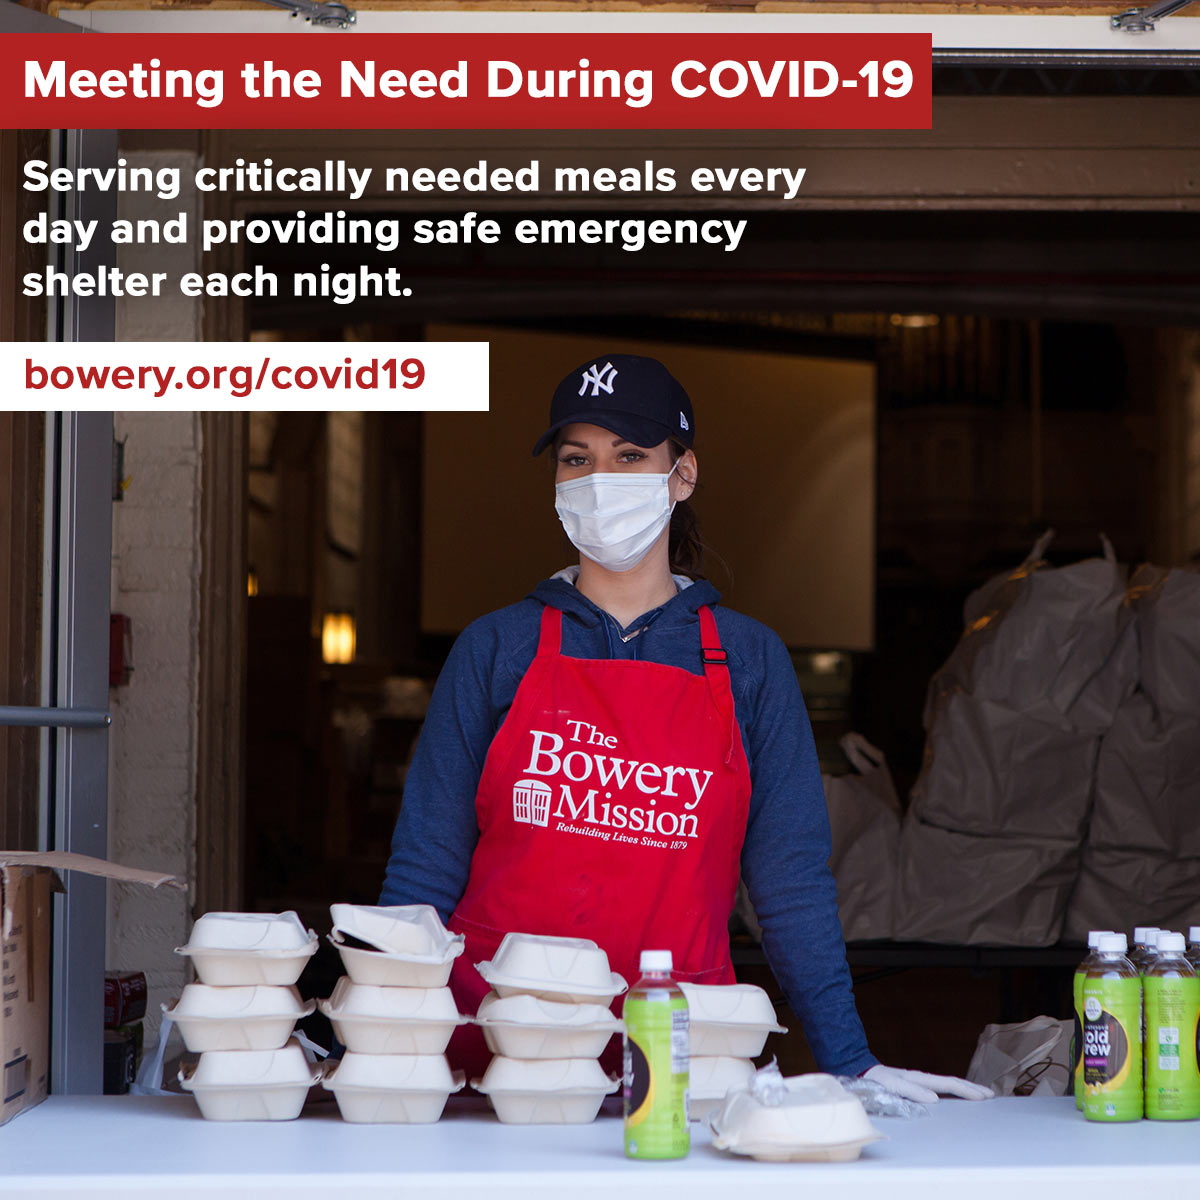 Meeting the need during COVID-19